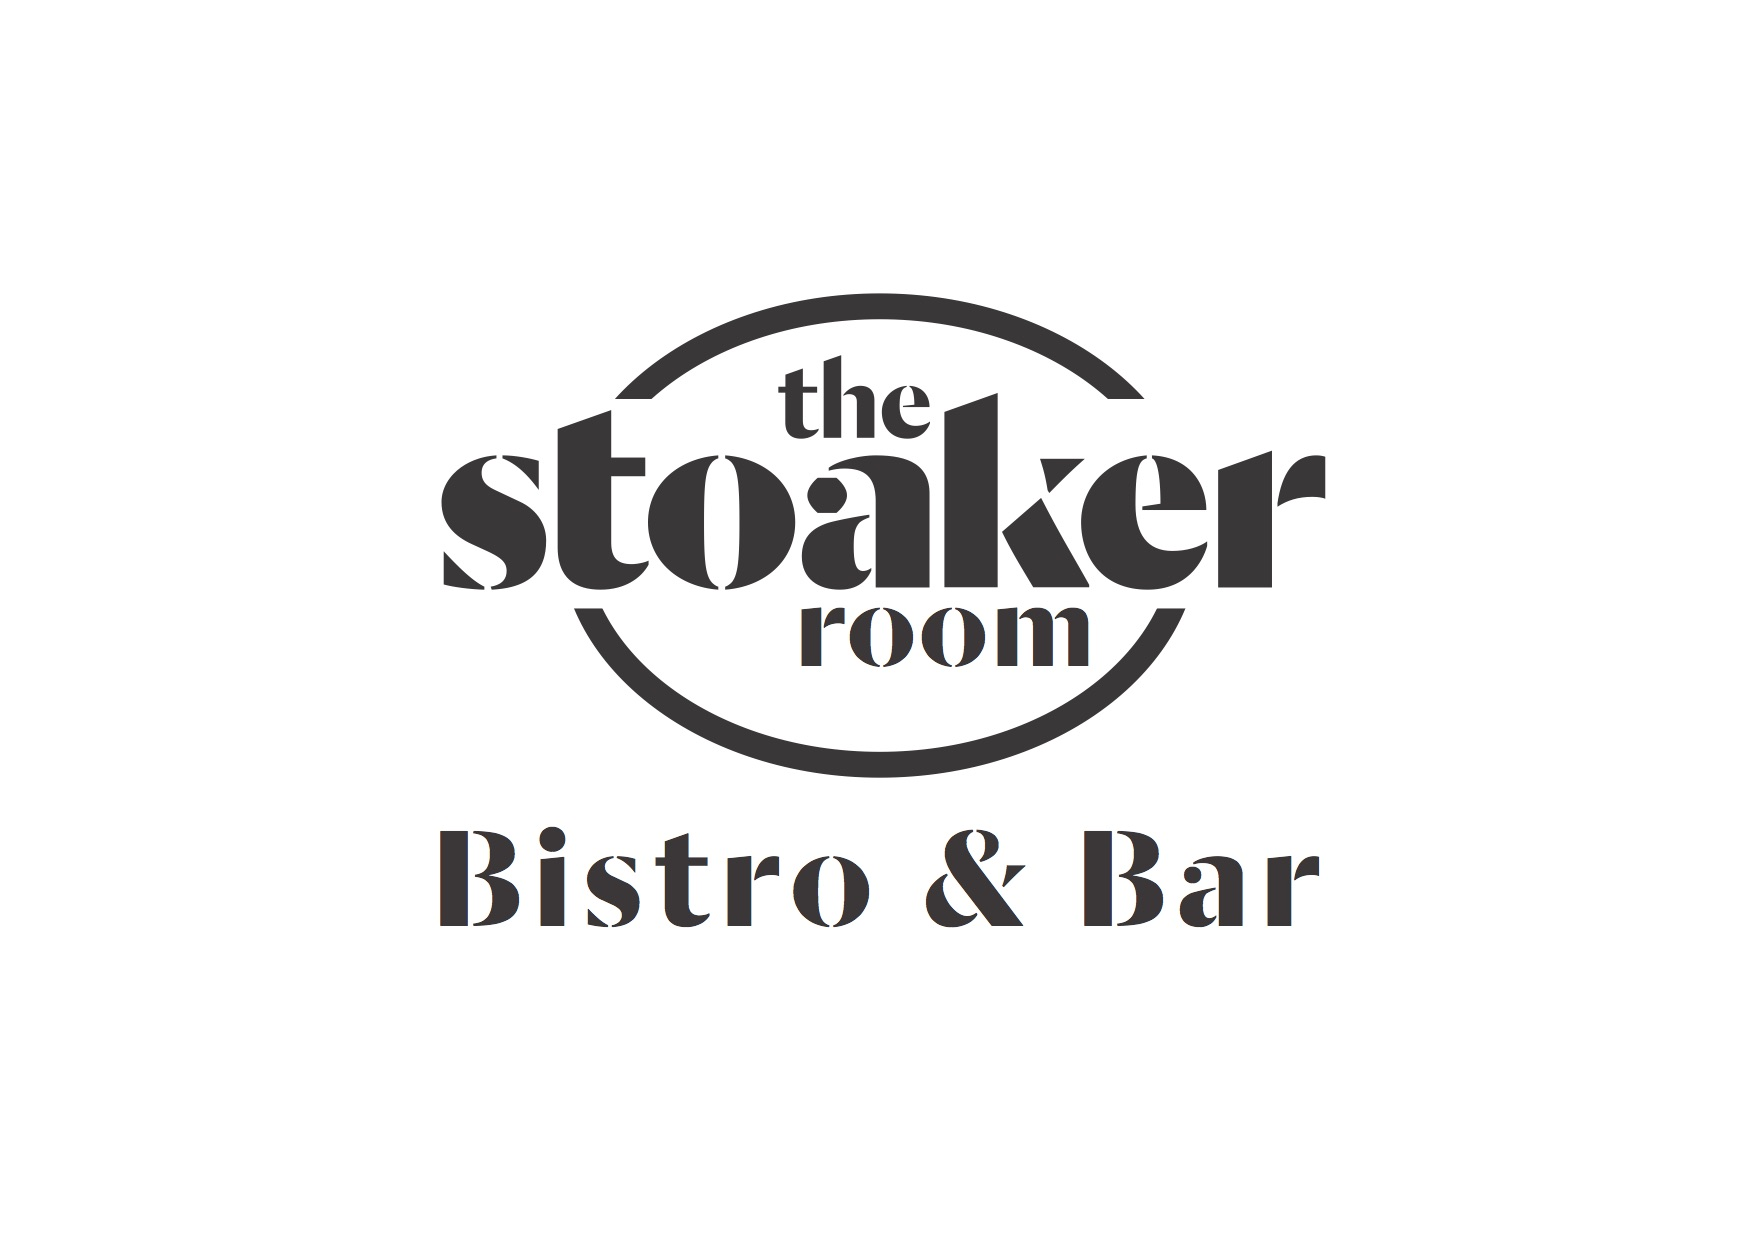 The Stoaker Room by Wild Earth